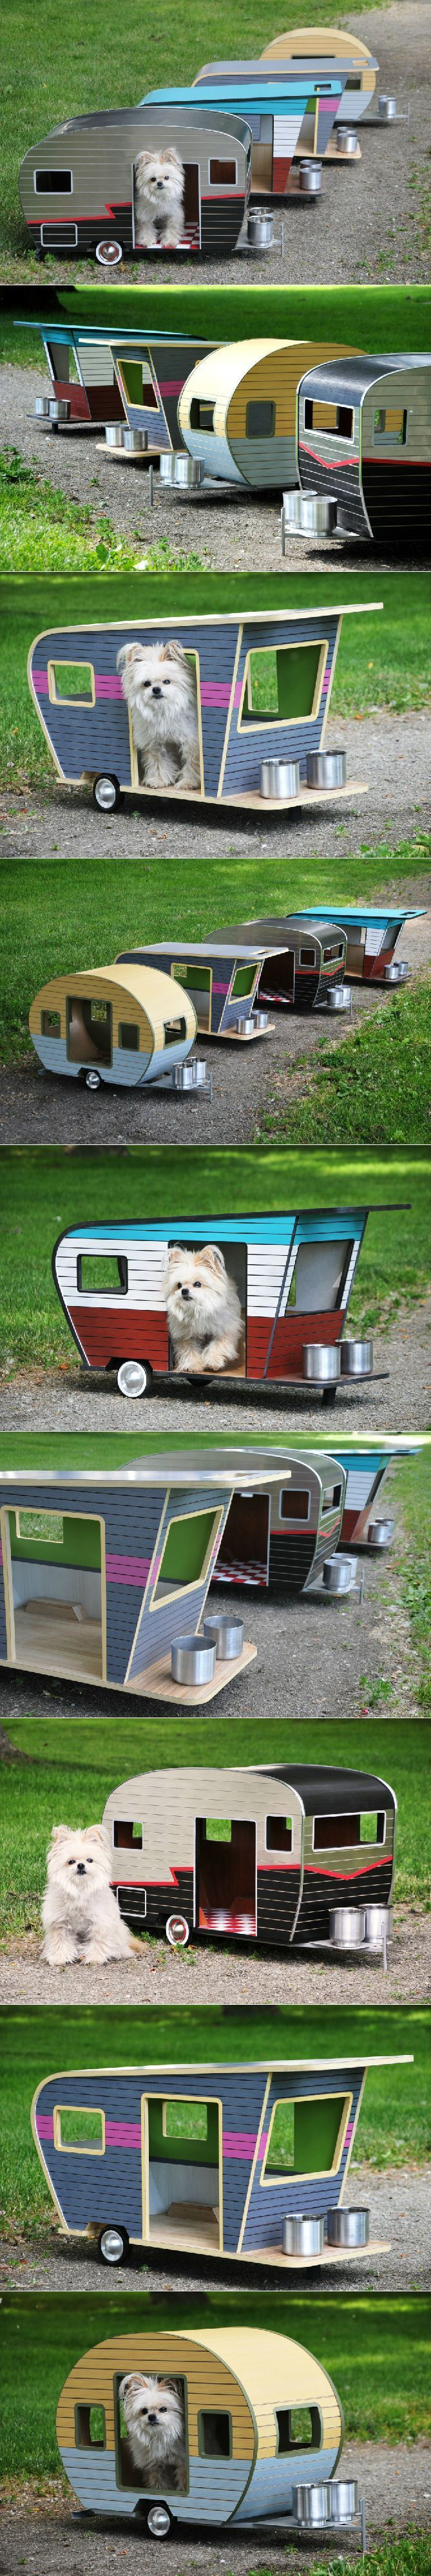 Cool Dog House Upgrade Instantly Endearing Pet Trailer Designs Unique dog sized